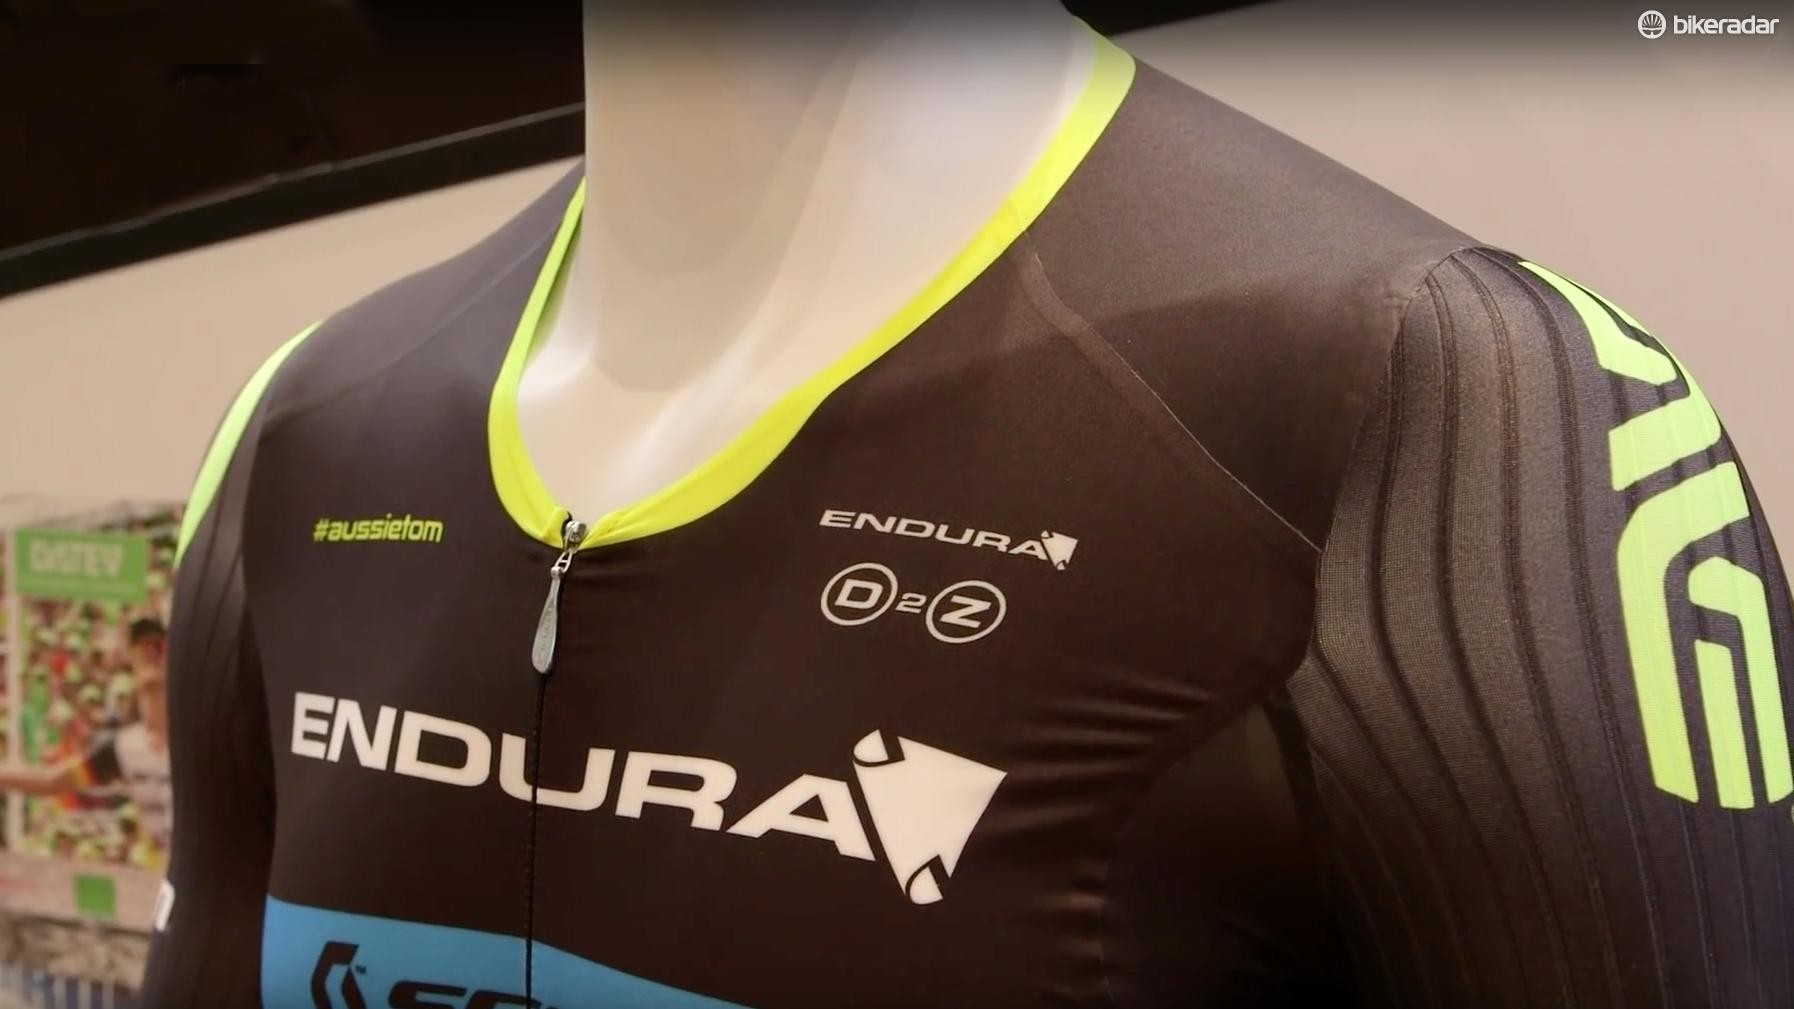 The new Endura tri skin suit